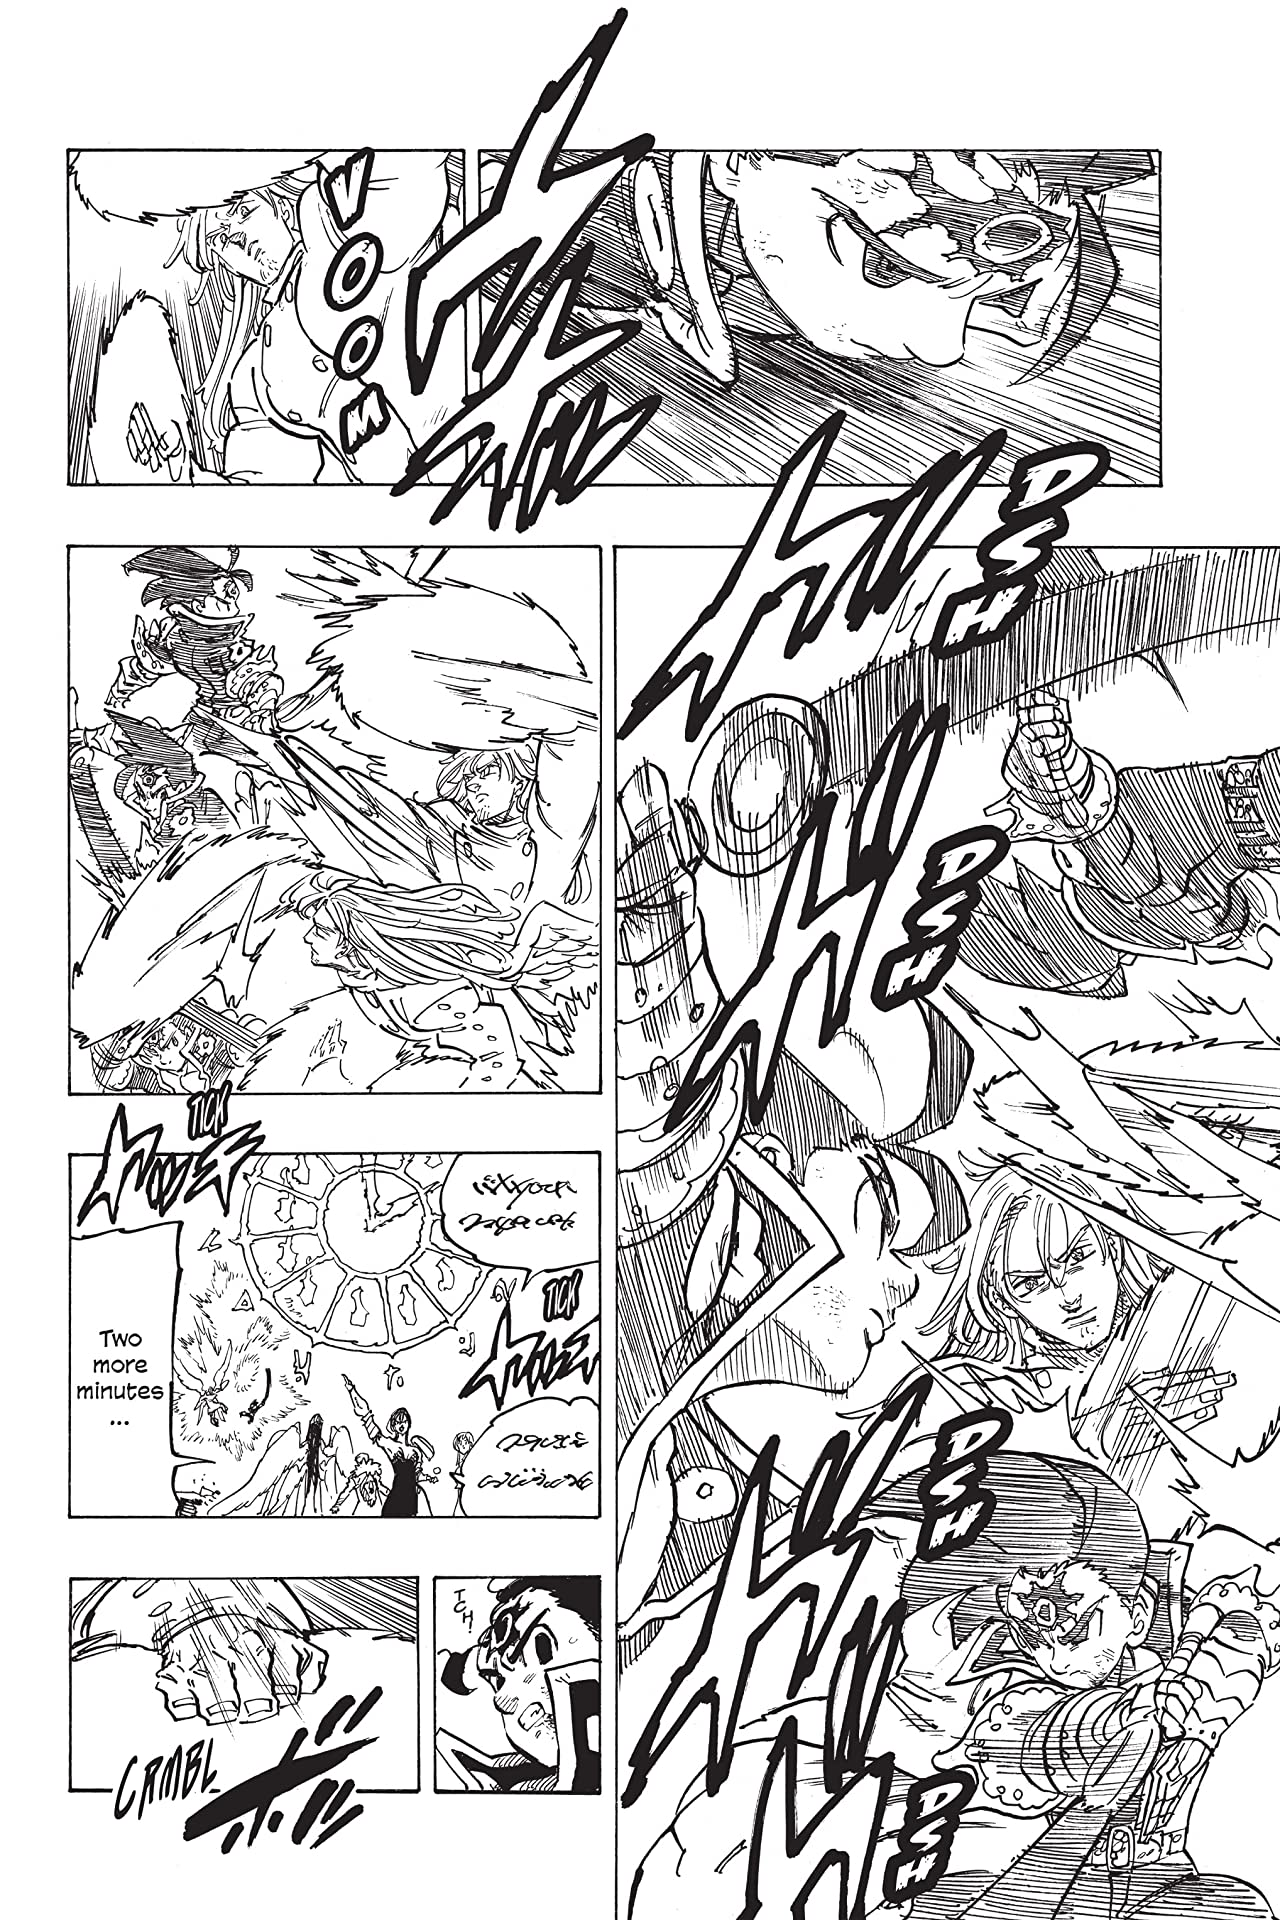 The Seven Deadly Sins #299